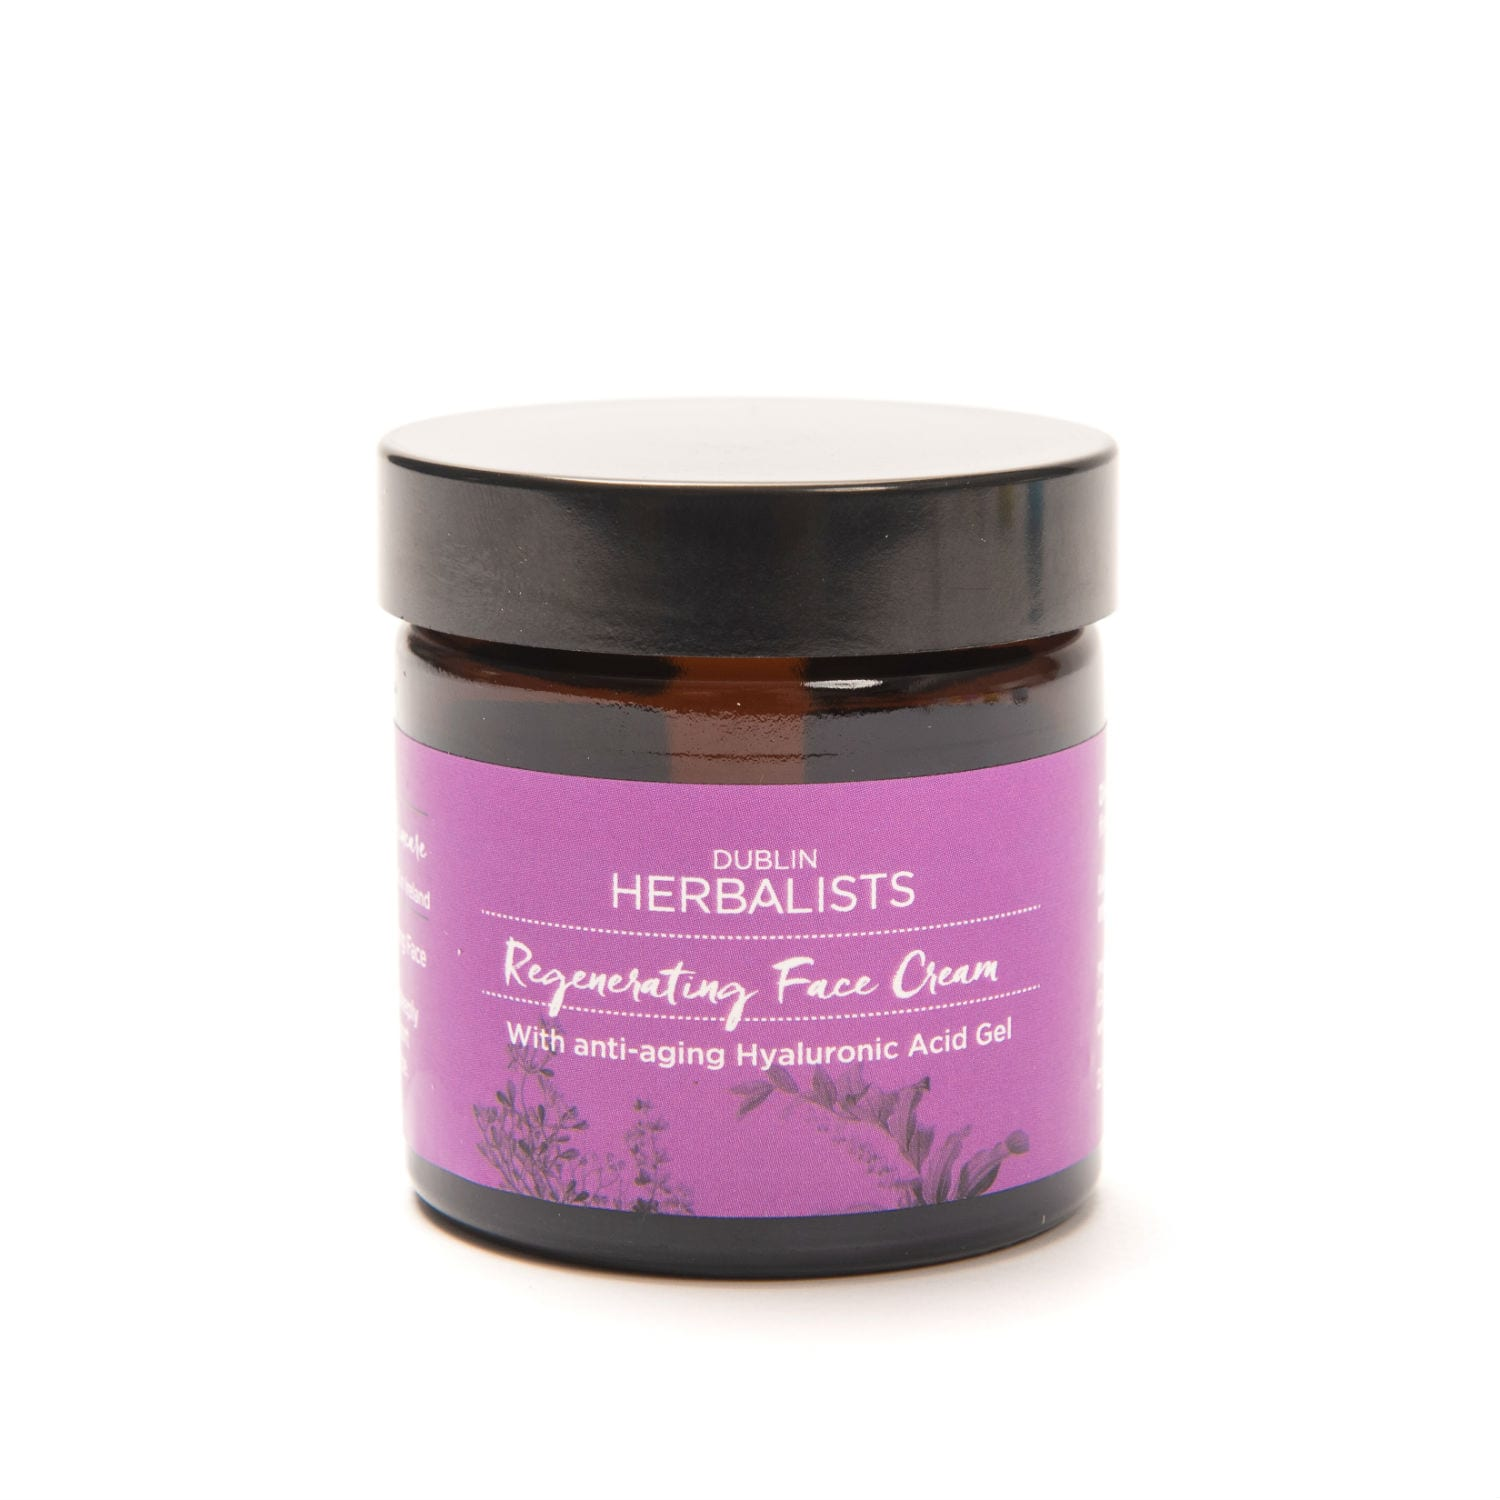 DUBLIN HERBALISTS - Regenerating Face Cream